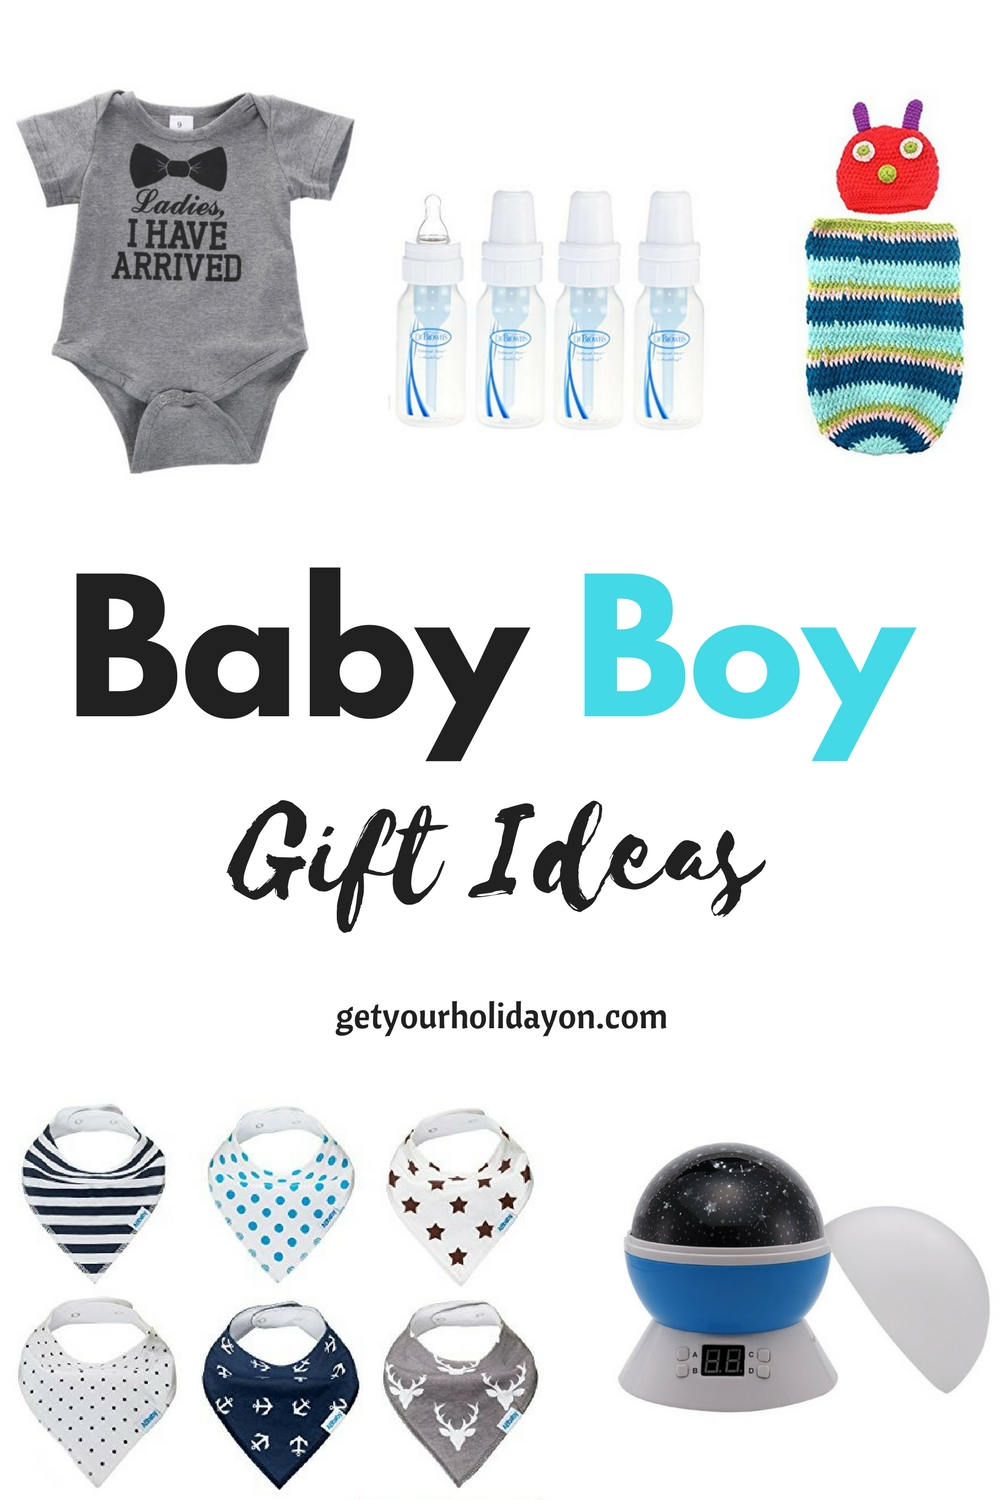 Baby Boy Gifts For Christmas : Baby boy gift ideas get your holiday on